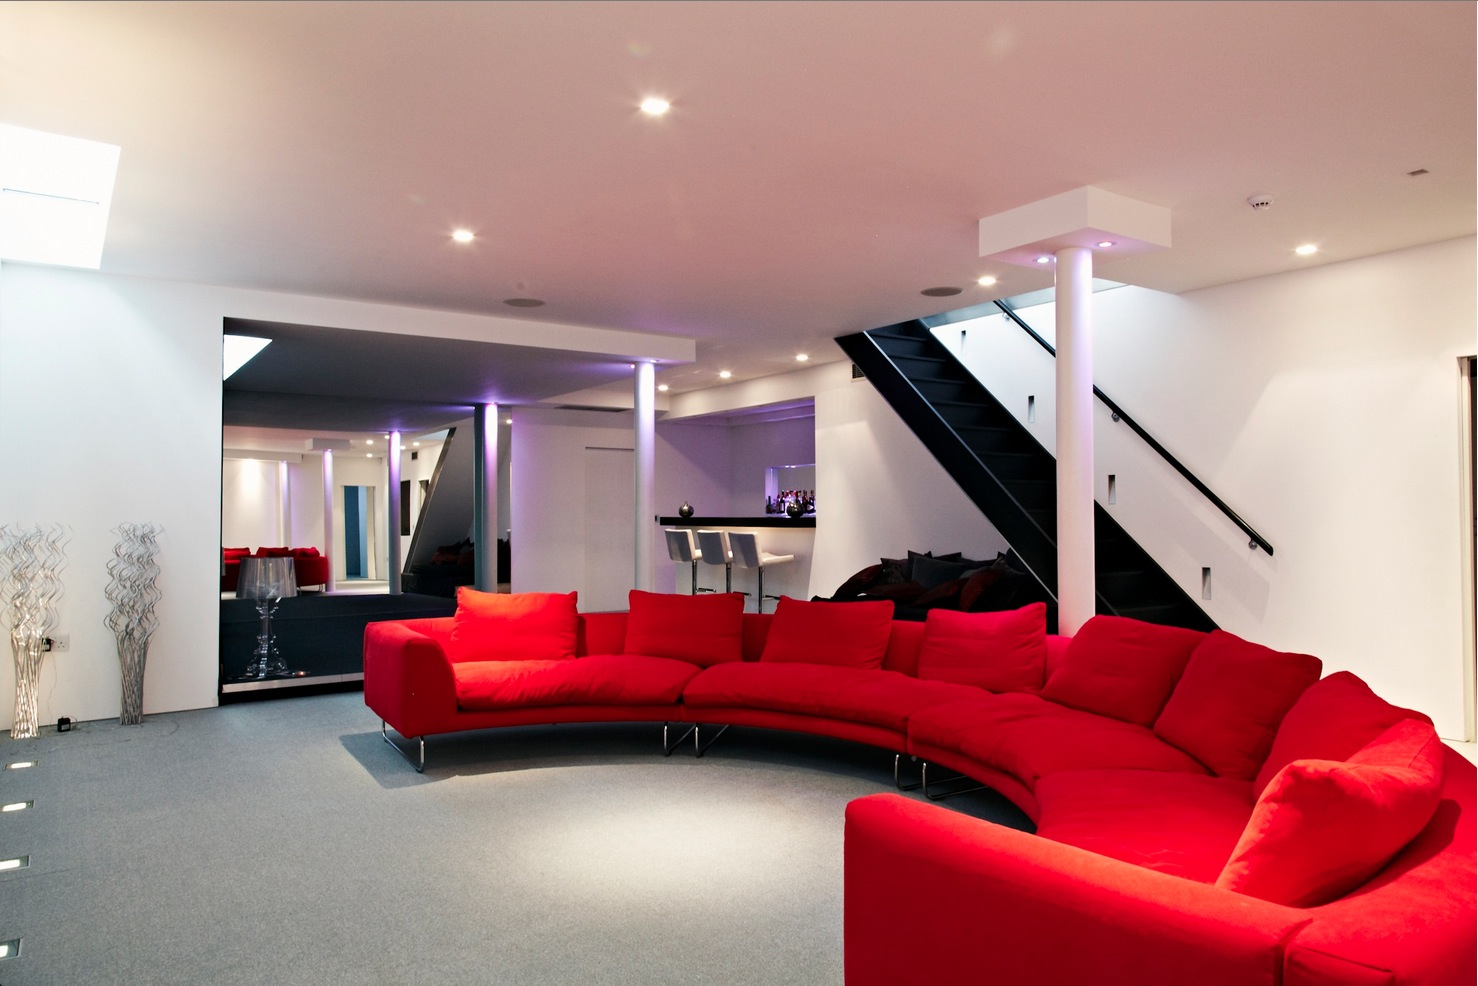 Cinema Room Red Couch Interior Design Ideas